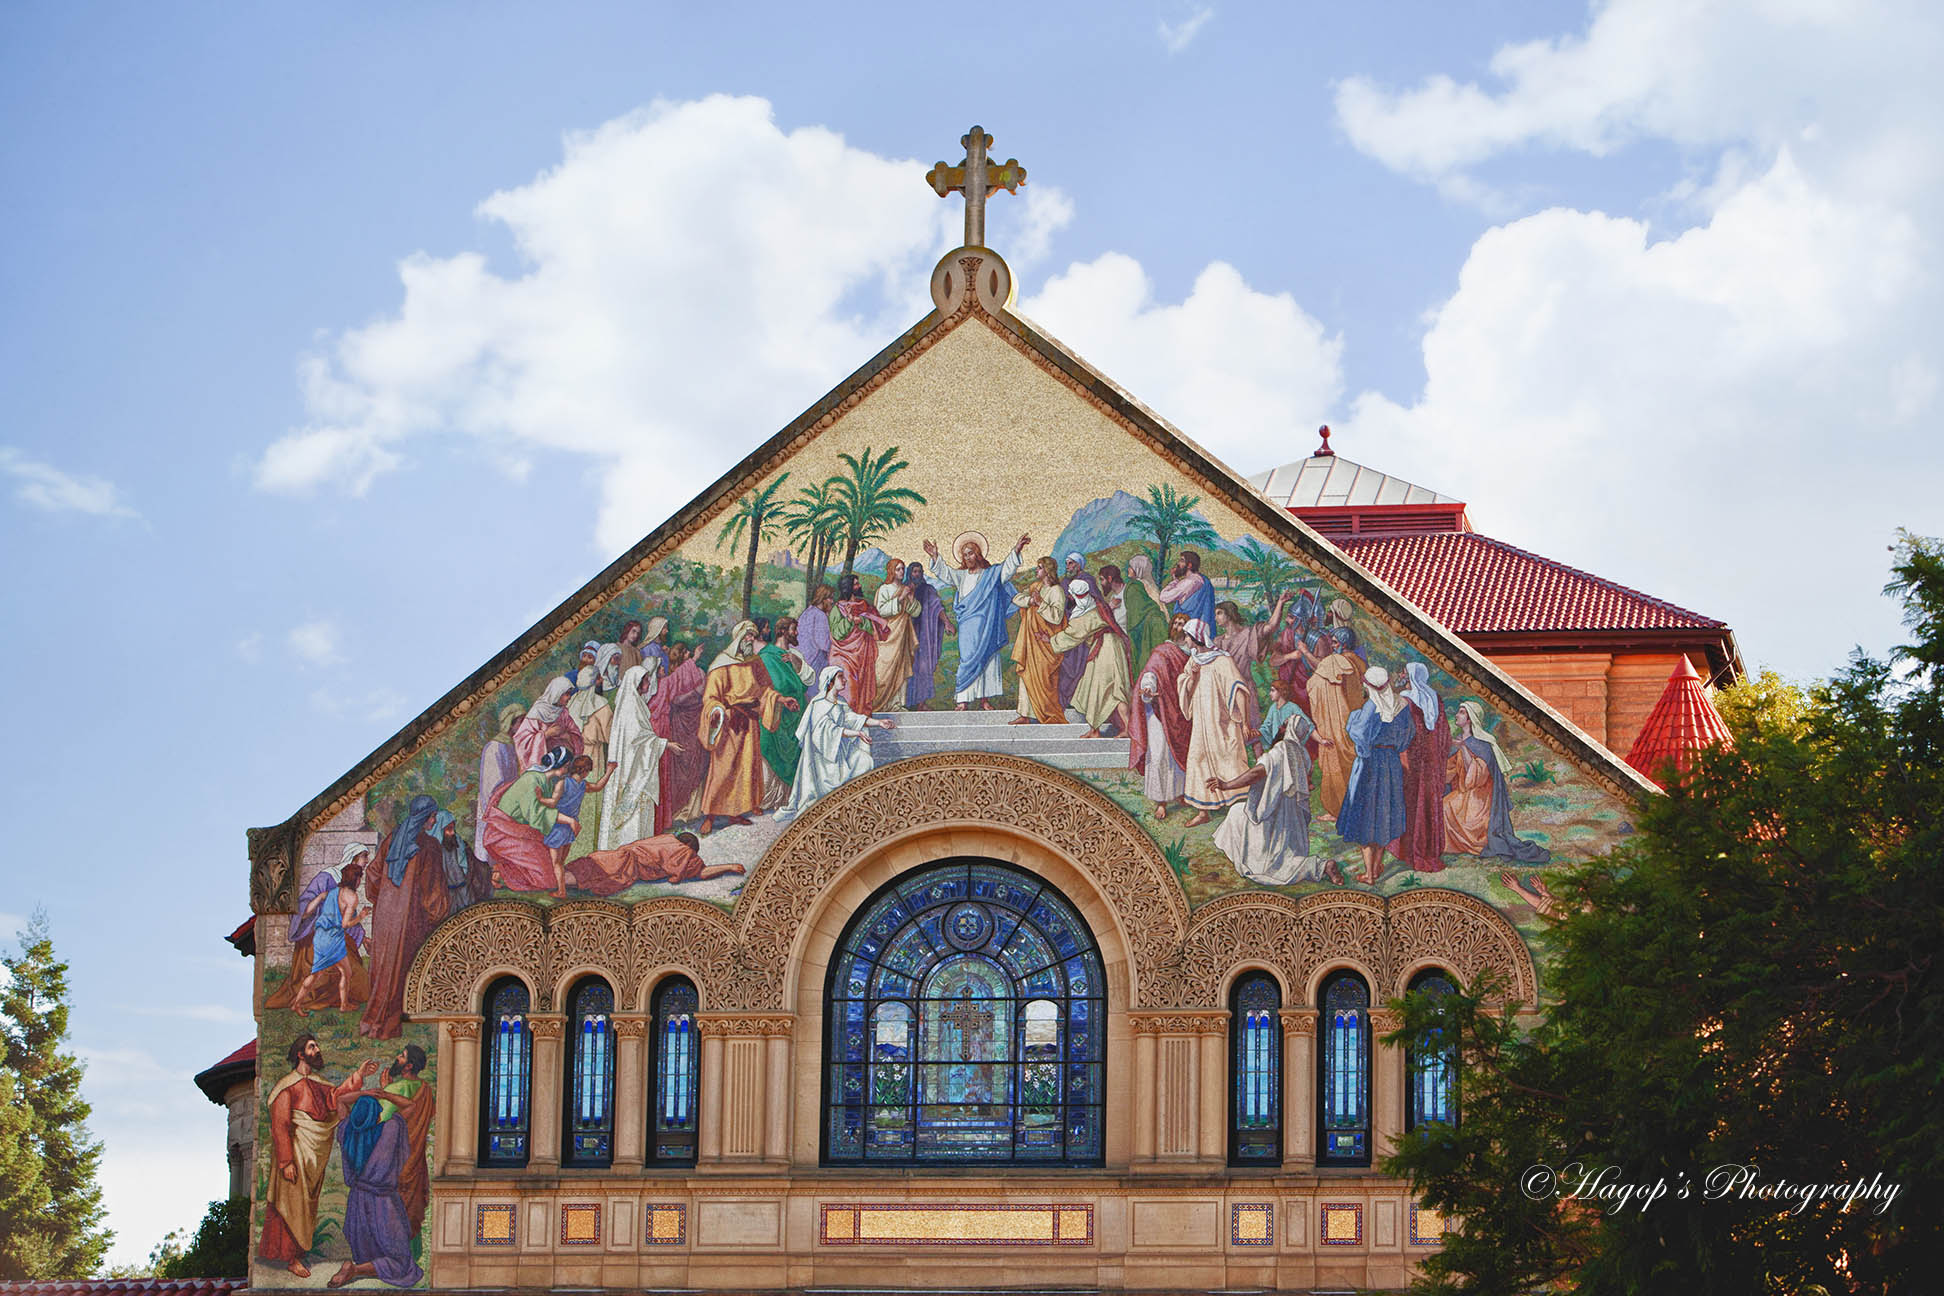 the front of the memorial church in palo alto